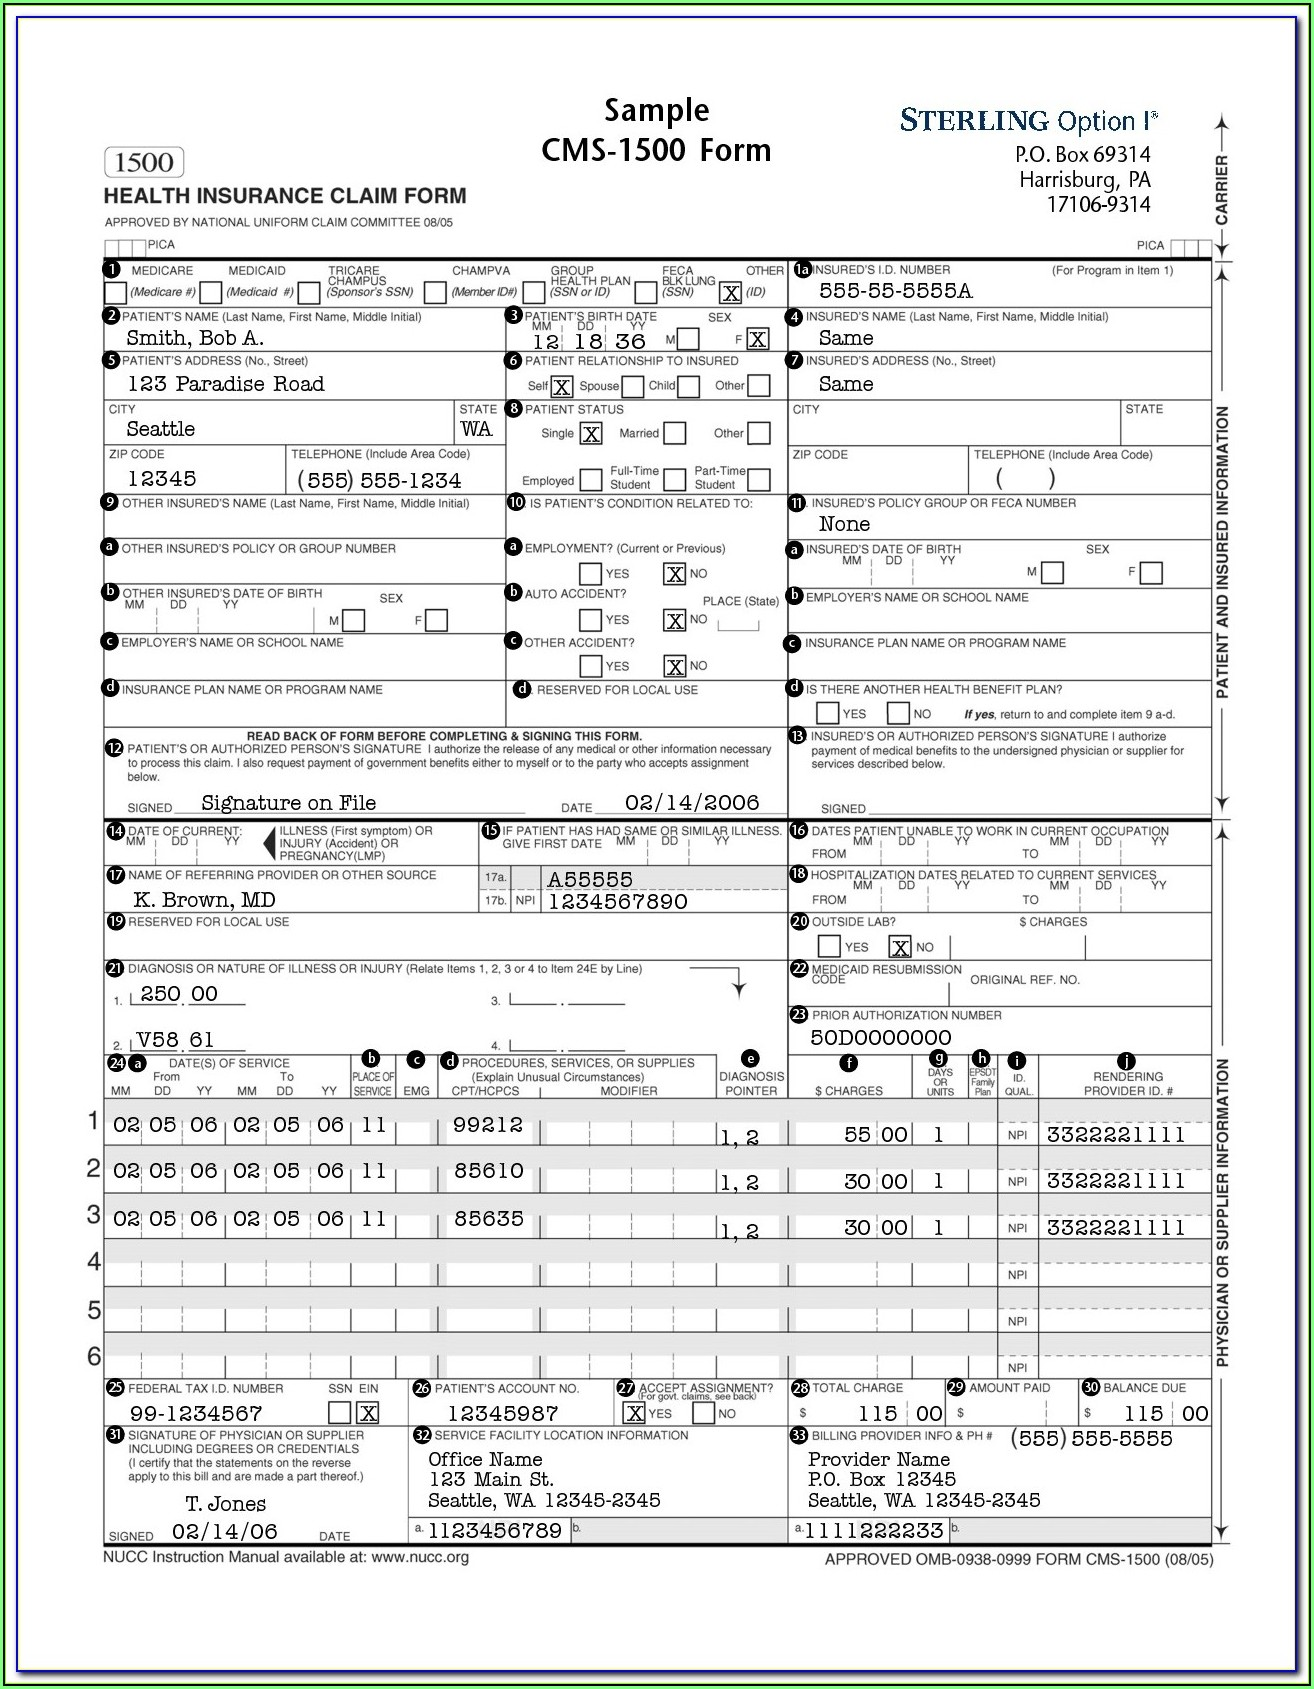 Cms 1500 Form Instructions Medicare